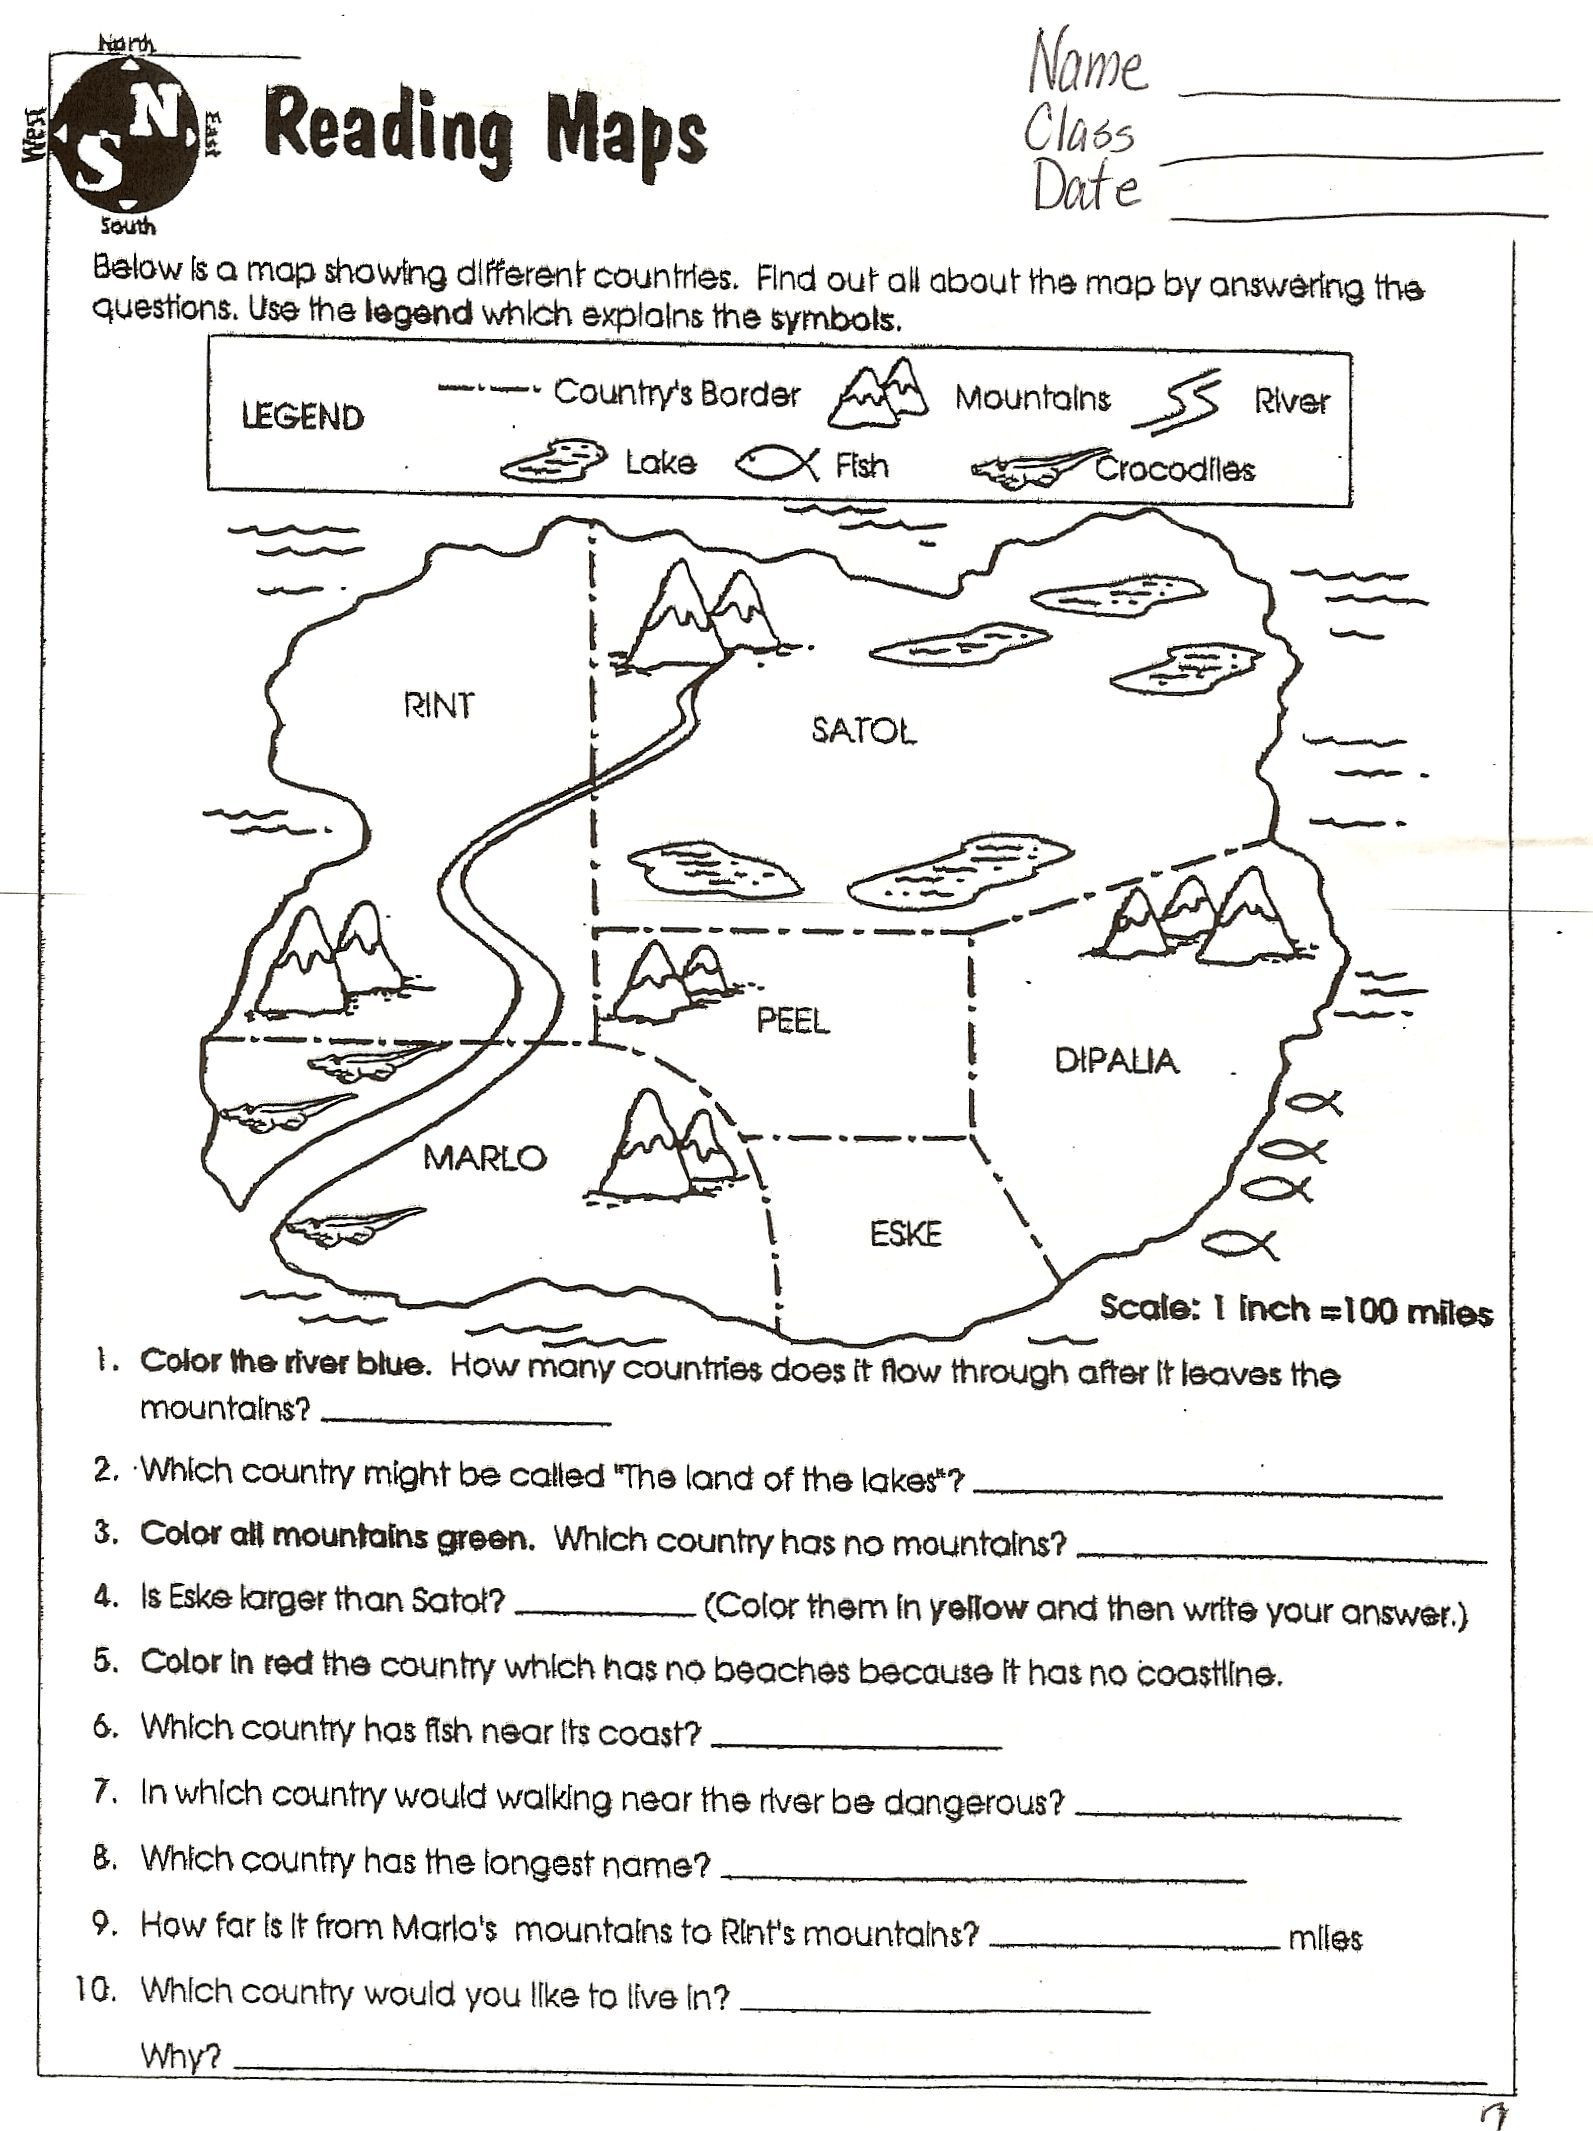 Geography Worksheets Middle School Pdf Free Geography Worksheets Printable Arithmetic Worksheets